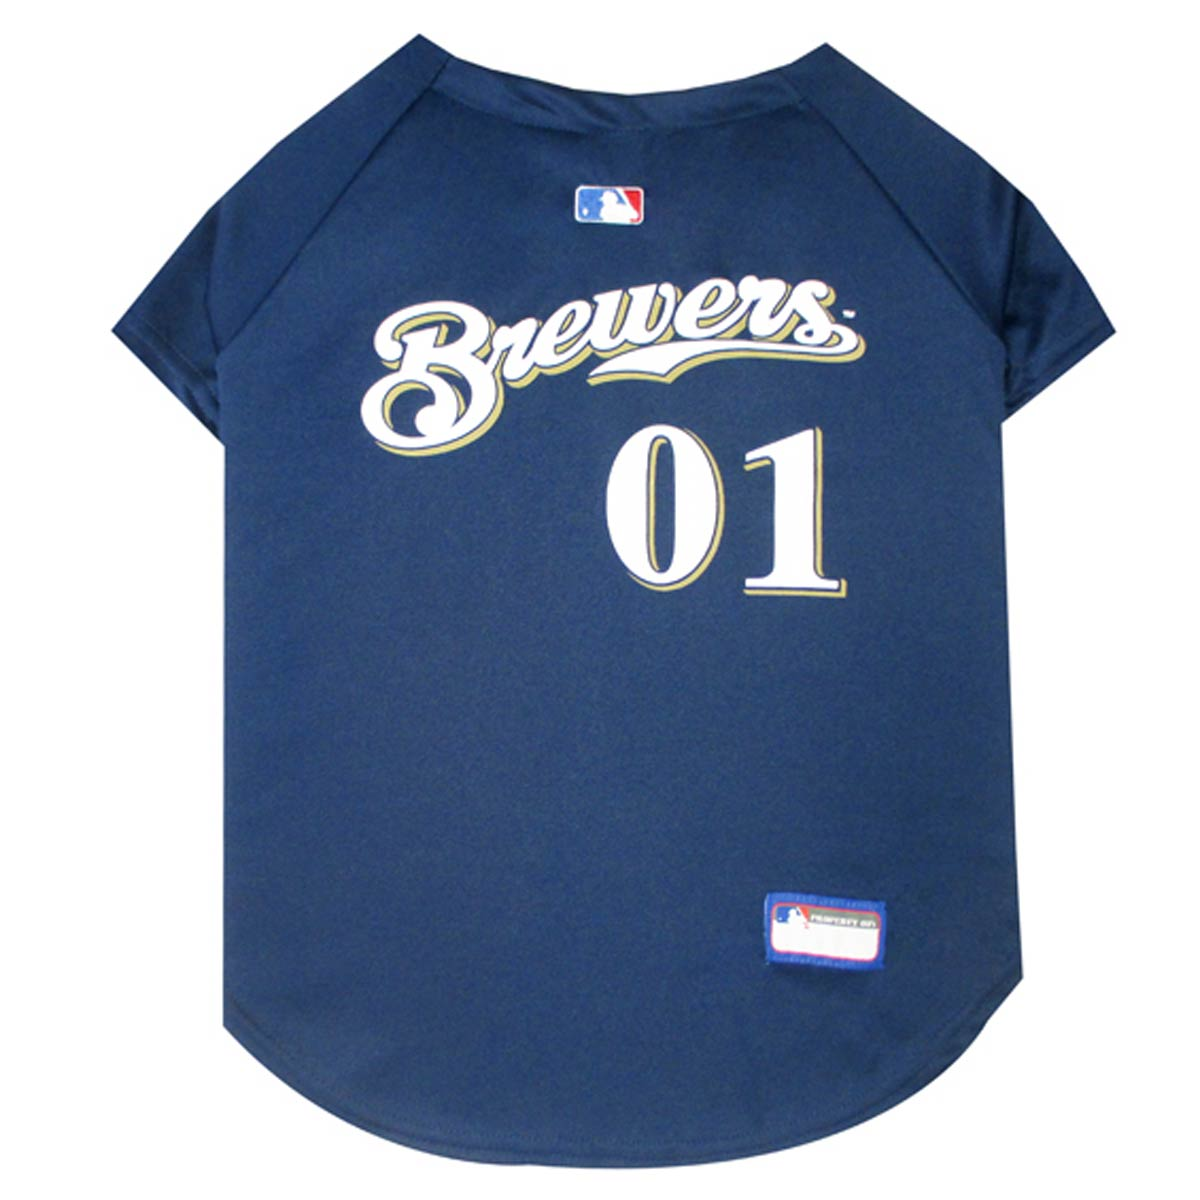 Milwaukee Brewers Officially Licensed Dog Jersey - Navy Blue